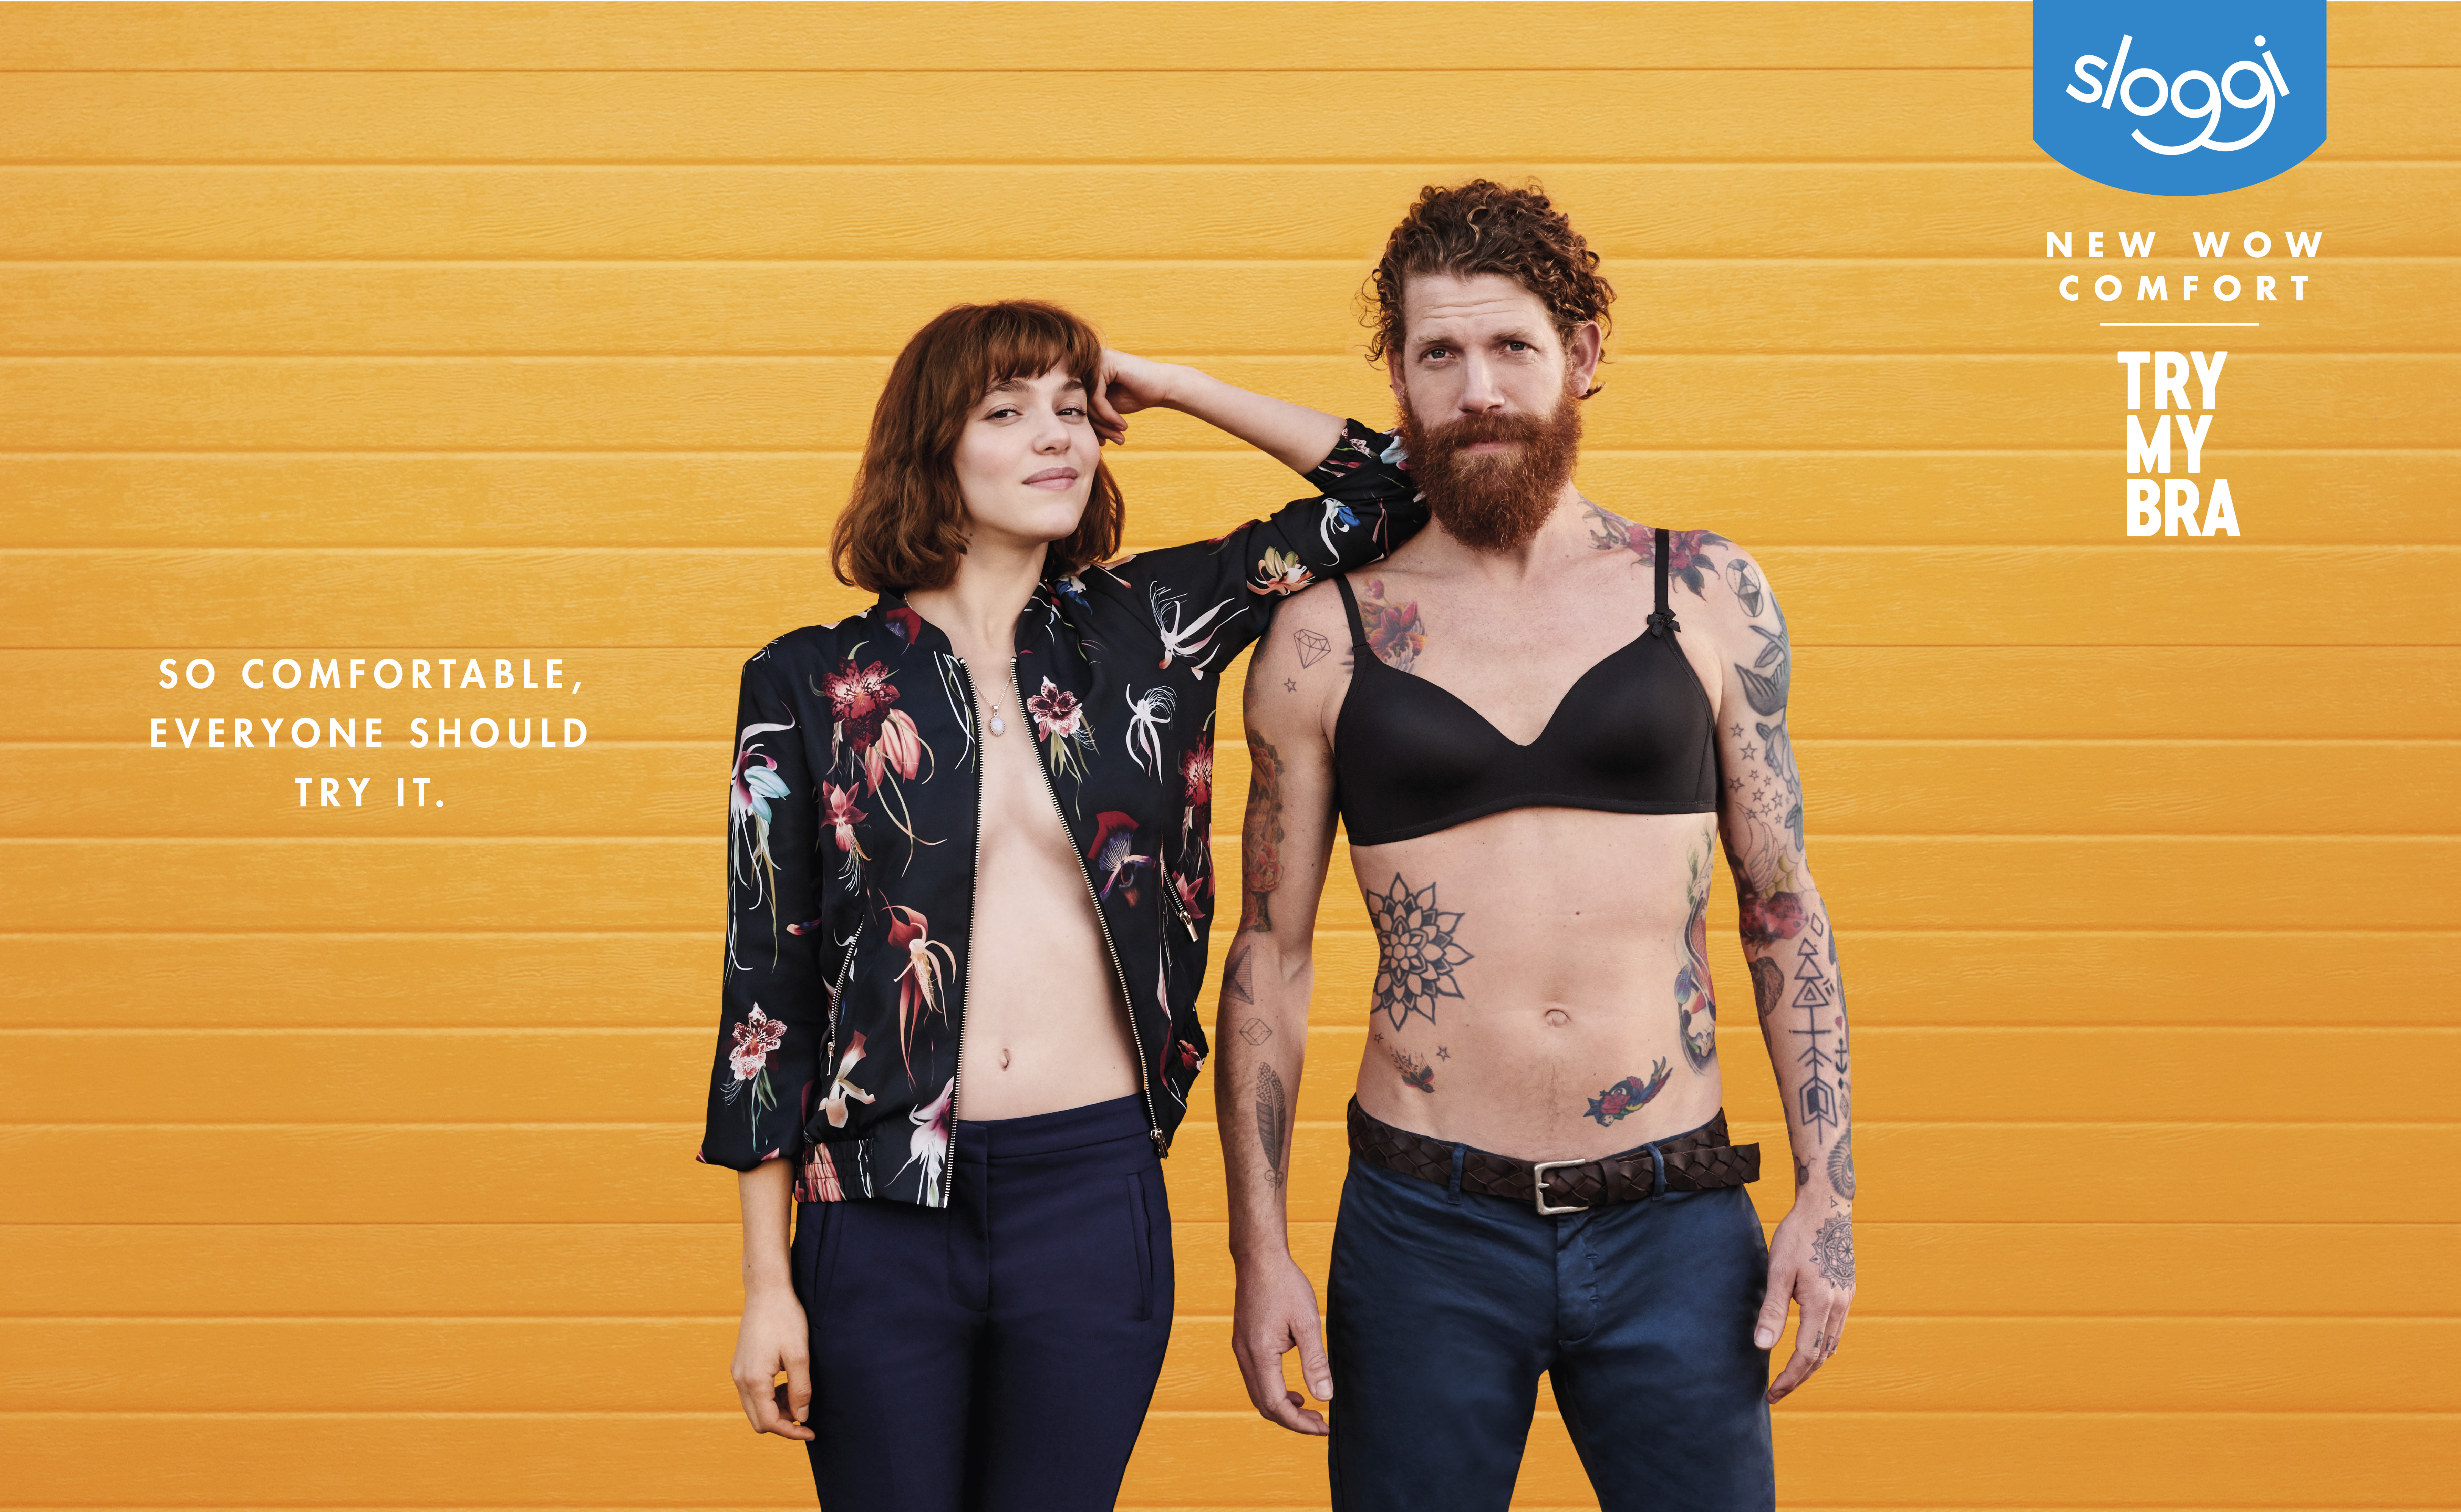 Sloggi and Mullenlowe Group's Provocative and Quirky 'Try My Bra' Campaign Celebrates True Comfort